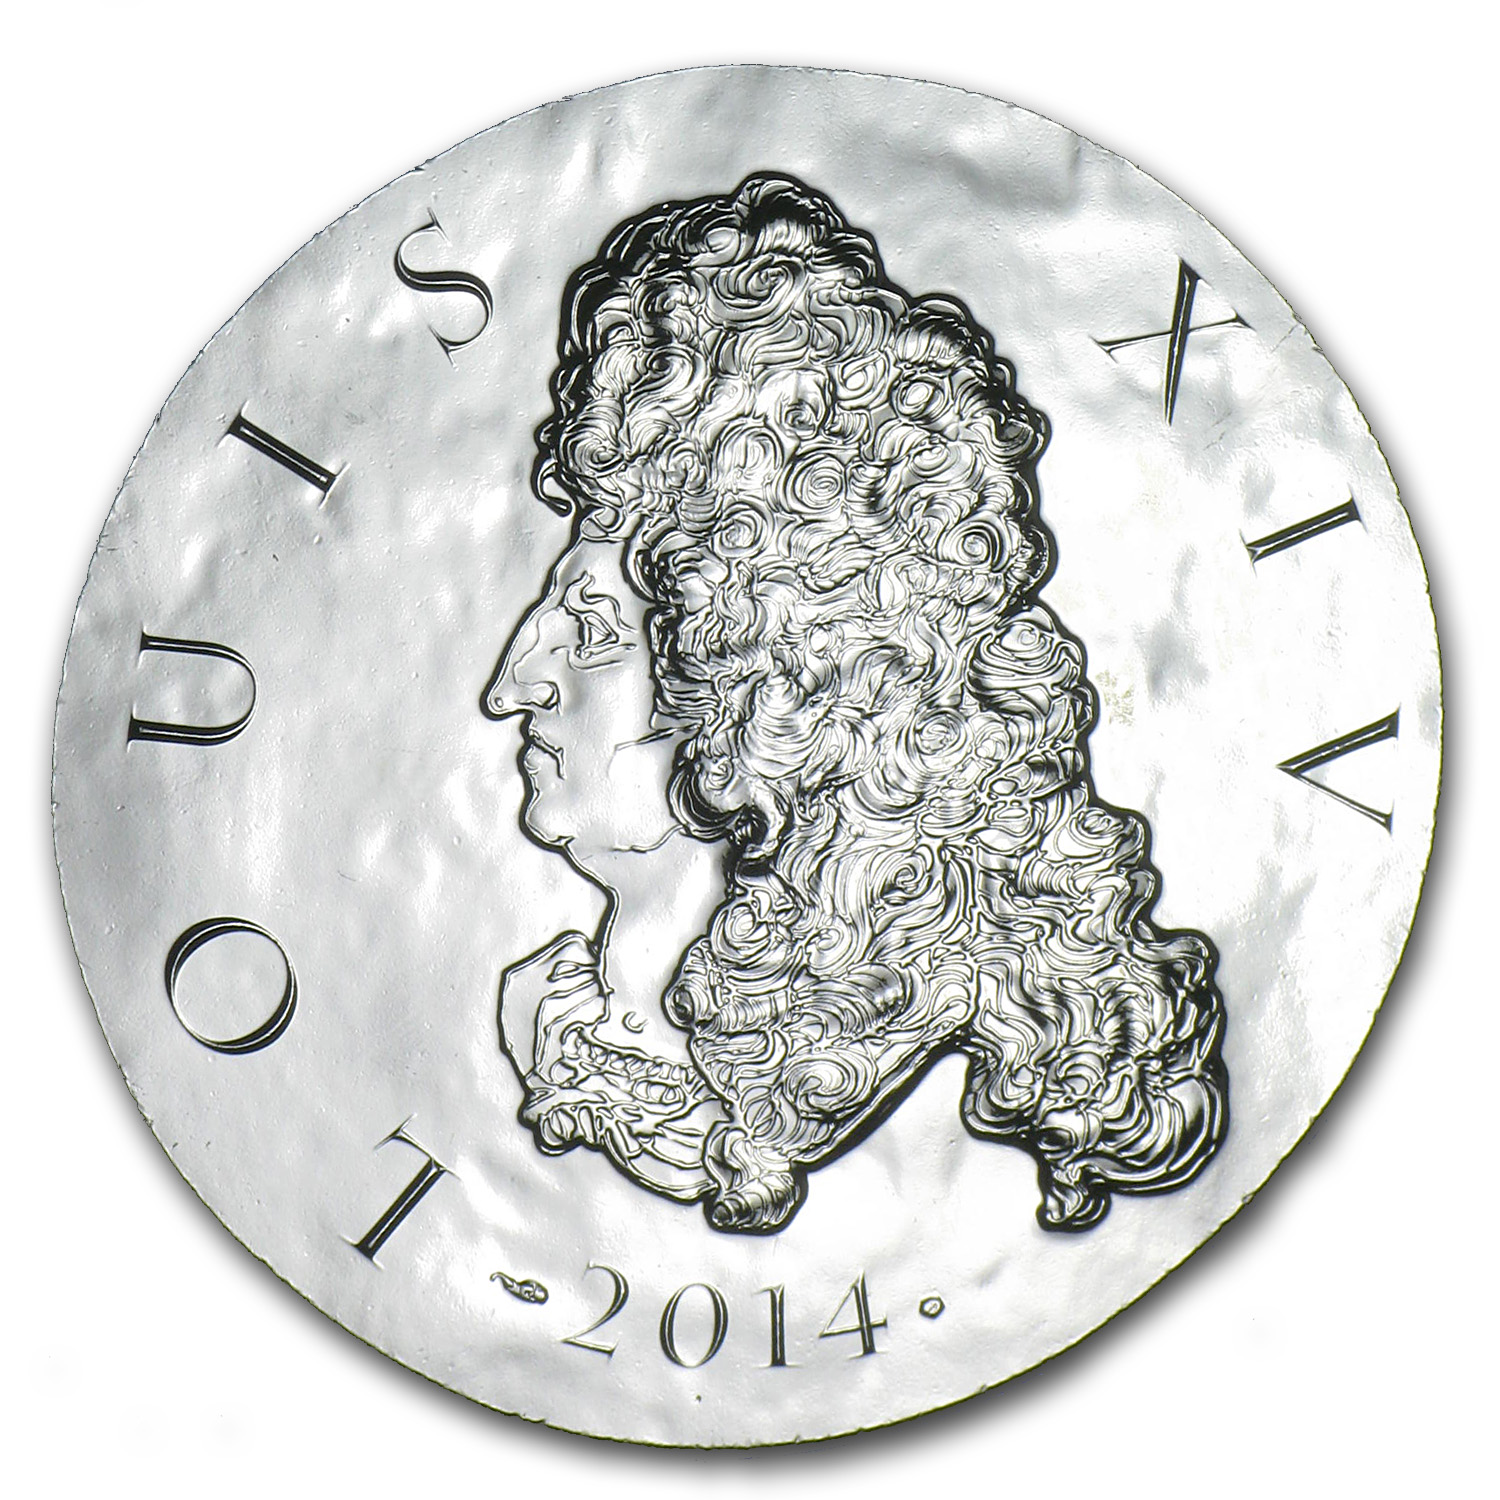 2014 France €10 Silver Legendary Collection Proof (Louis XIV)